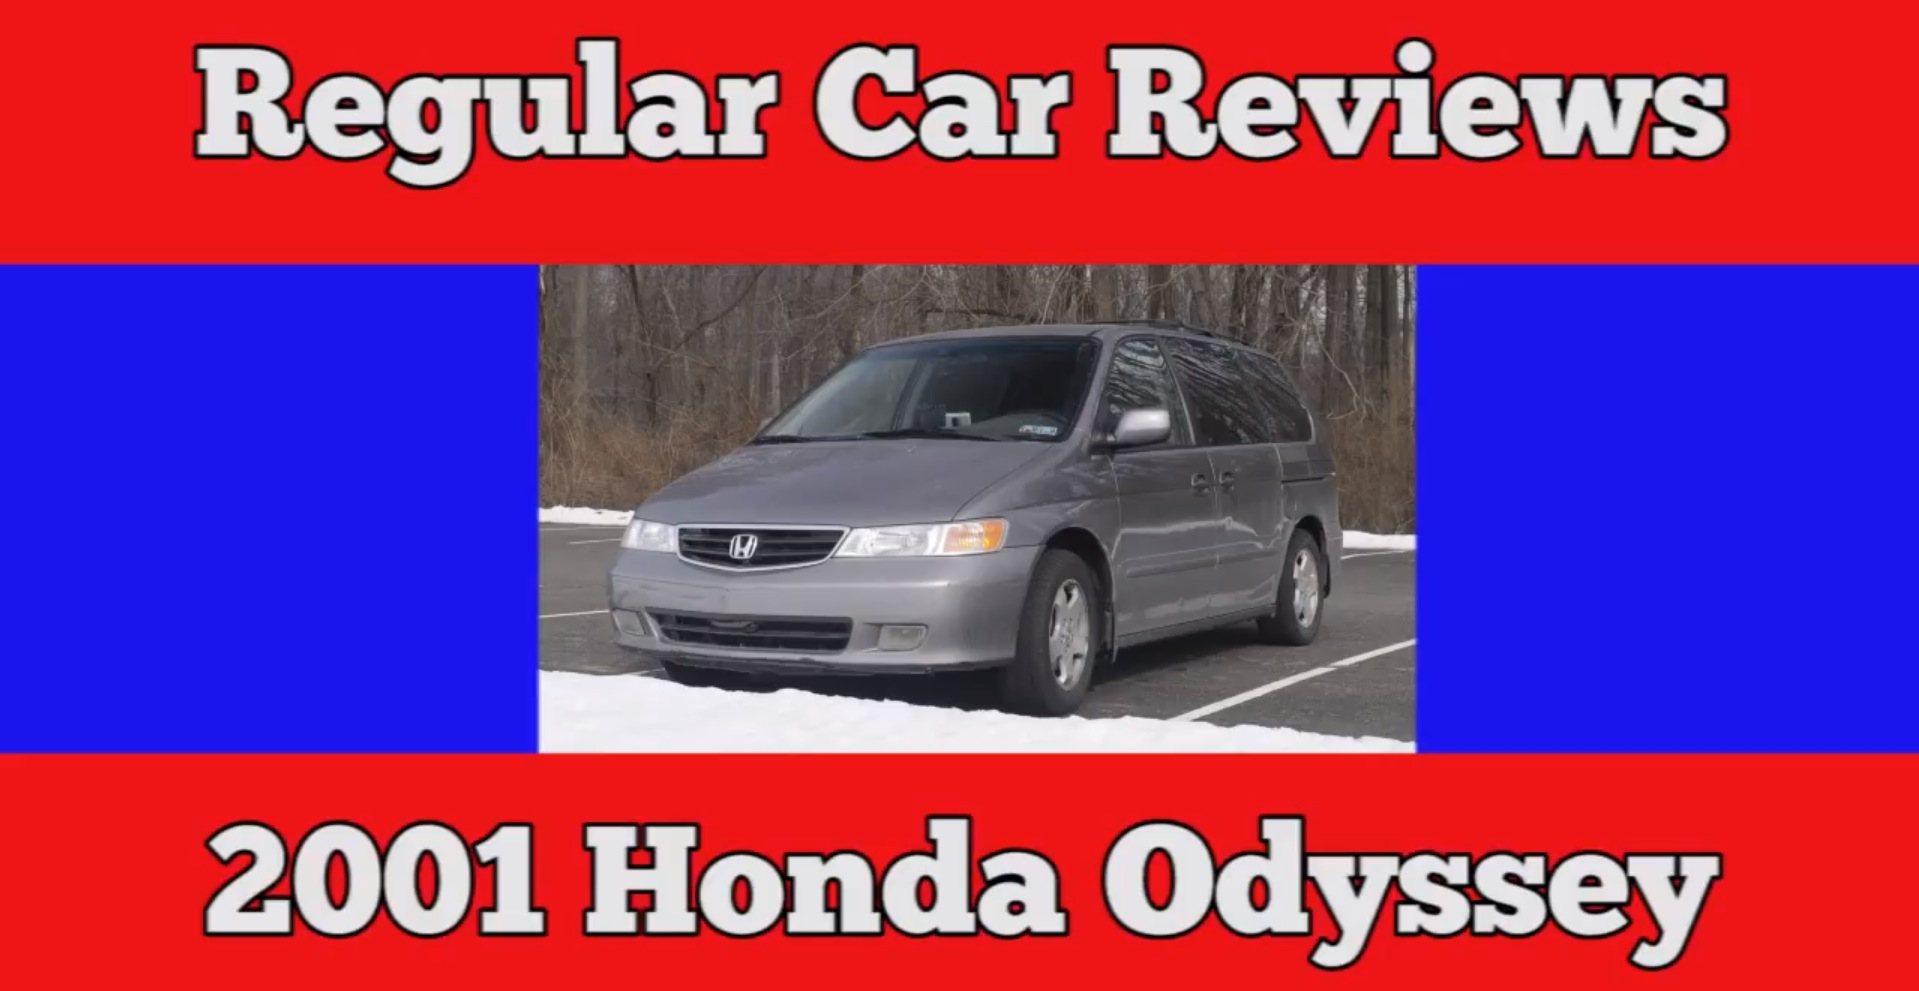 Superb 2001 Honda Odyssey: The Regular Car Reviews Take